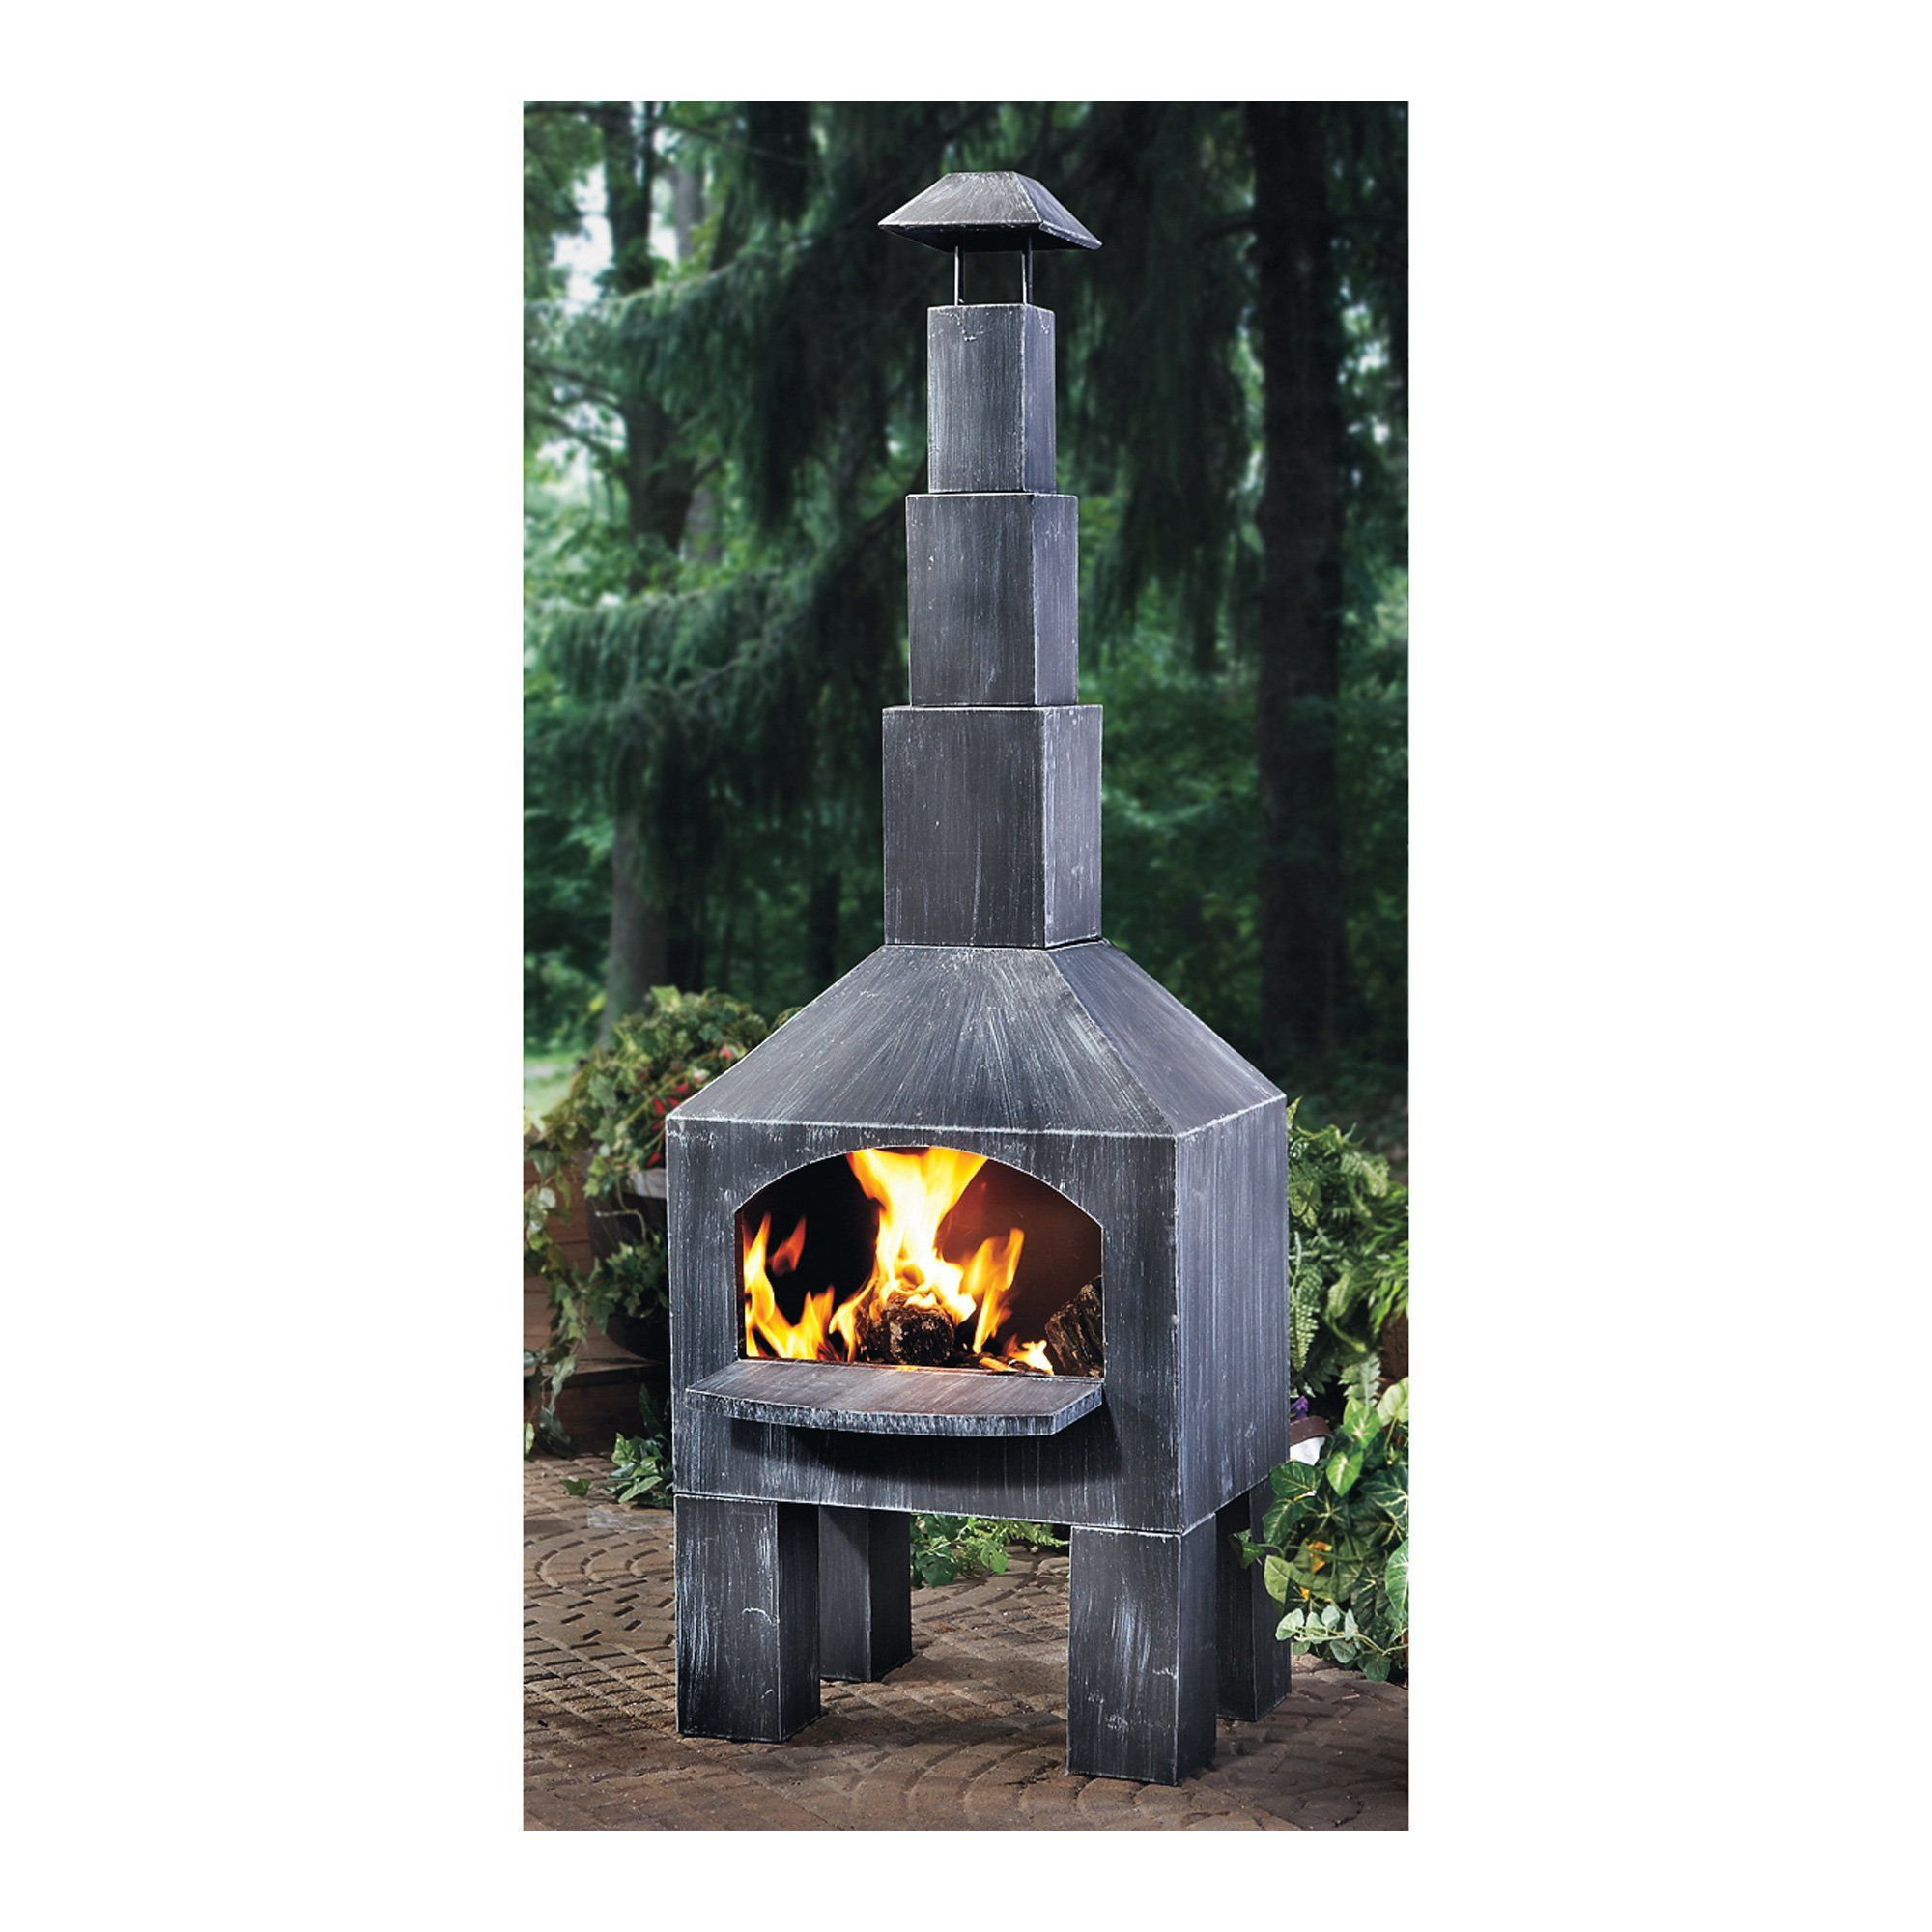 Outdoor Cooking Steel Chiminea With Smoke Stack Www Kotulas Com Free Shipping Fire Pit Backyard Fire Pit Patio Outdoor Fire